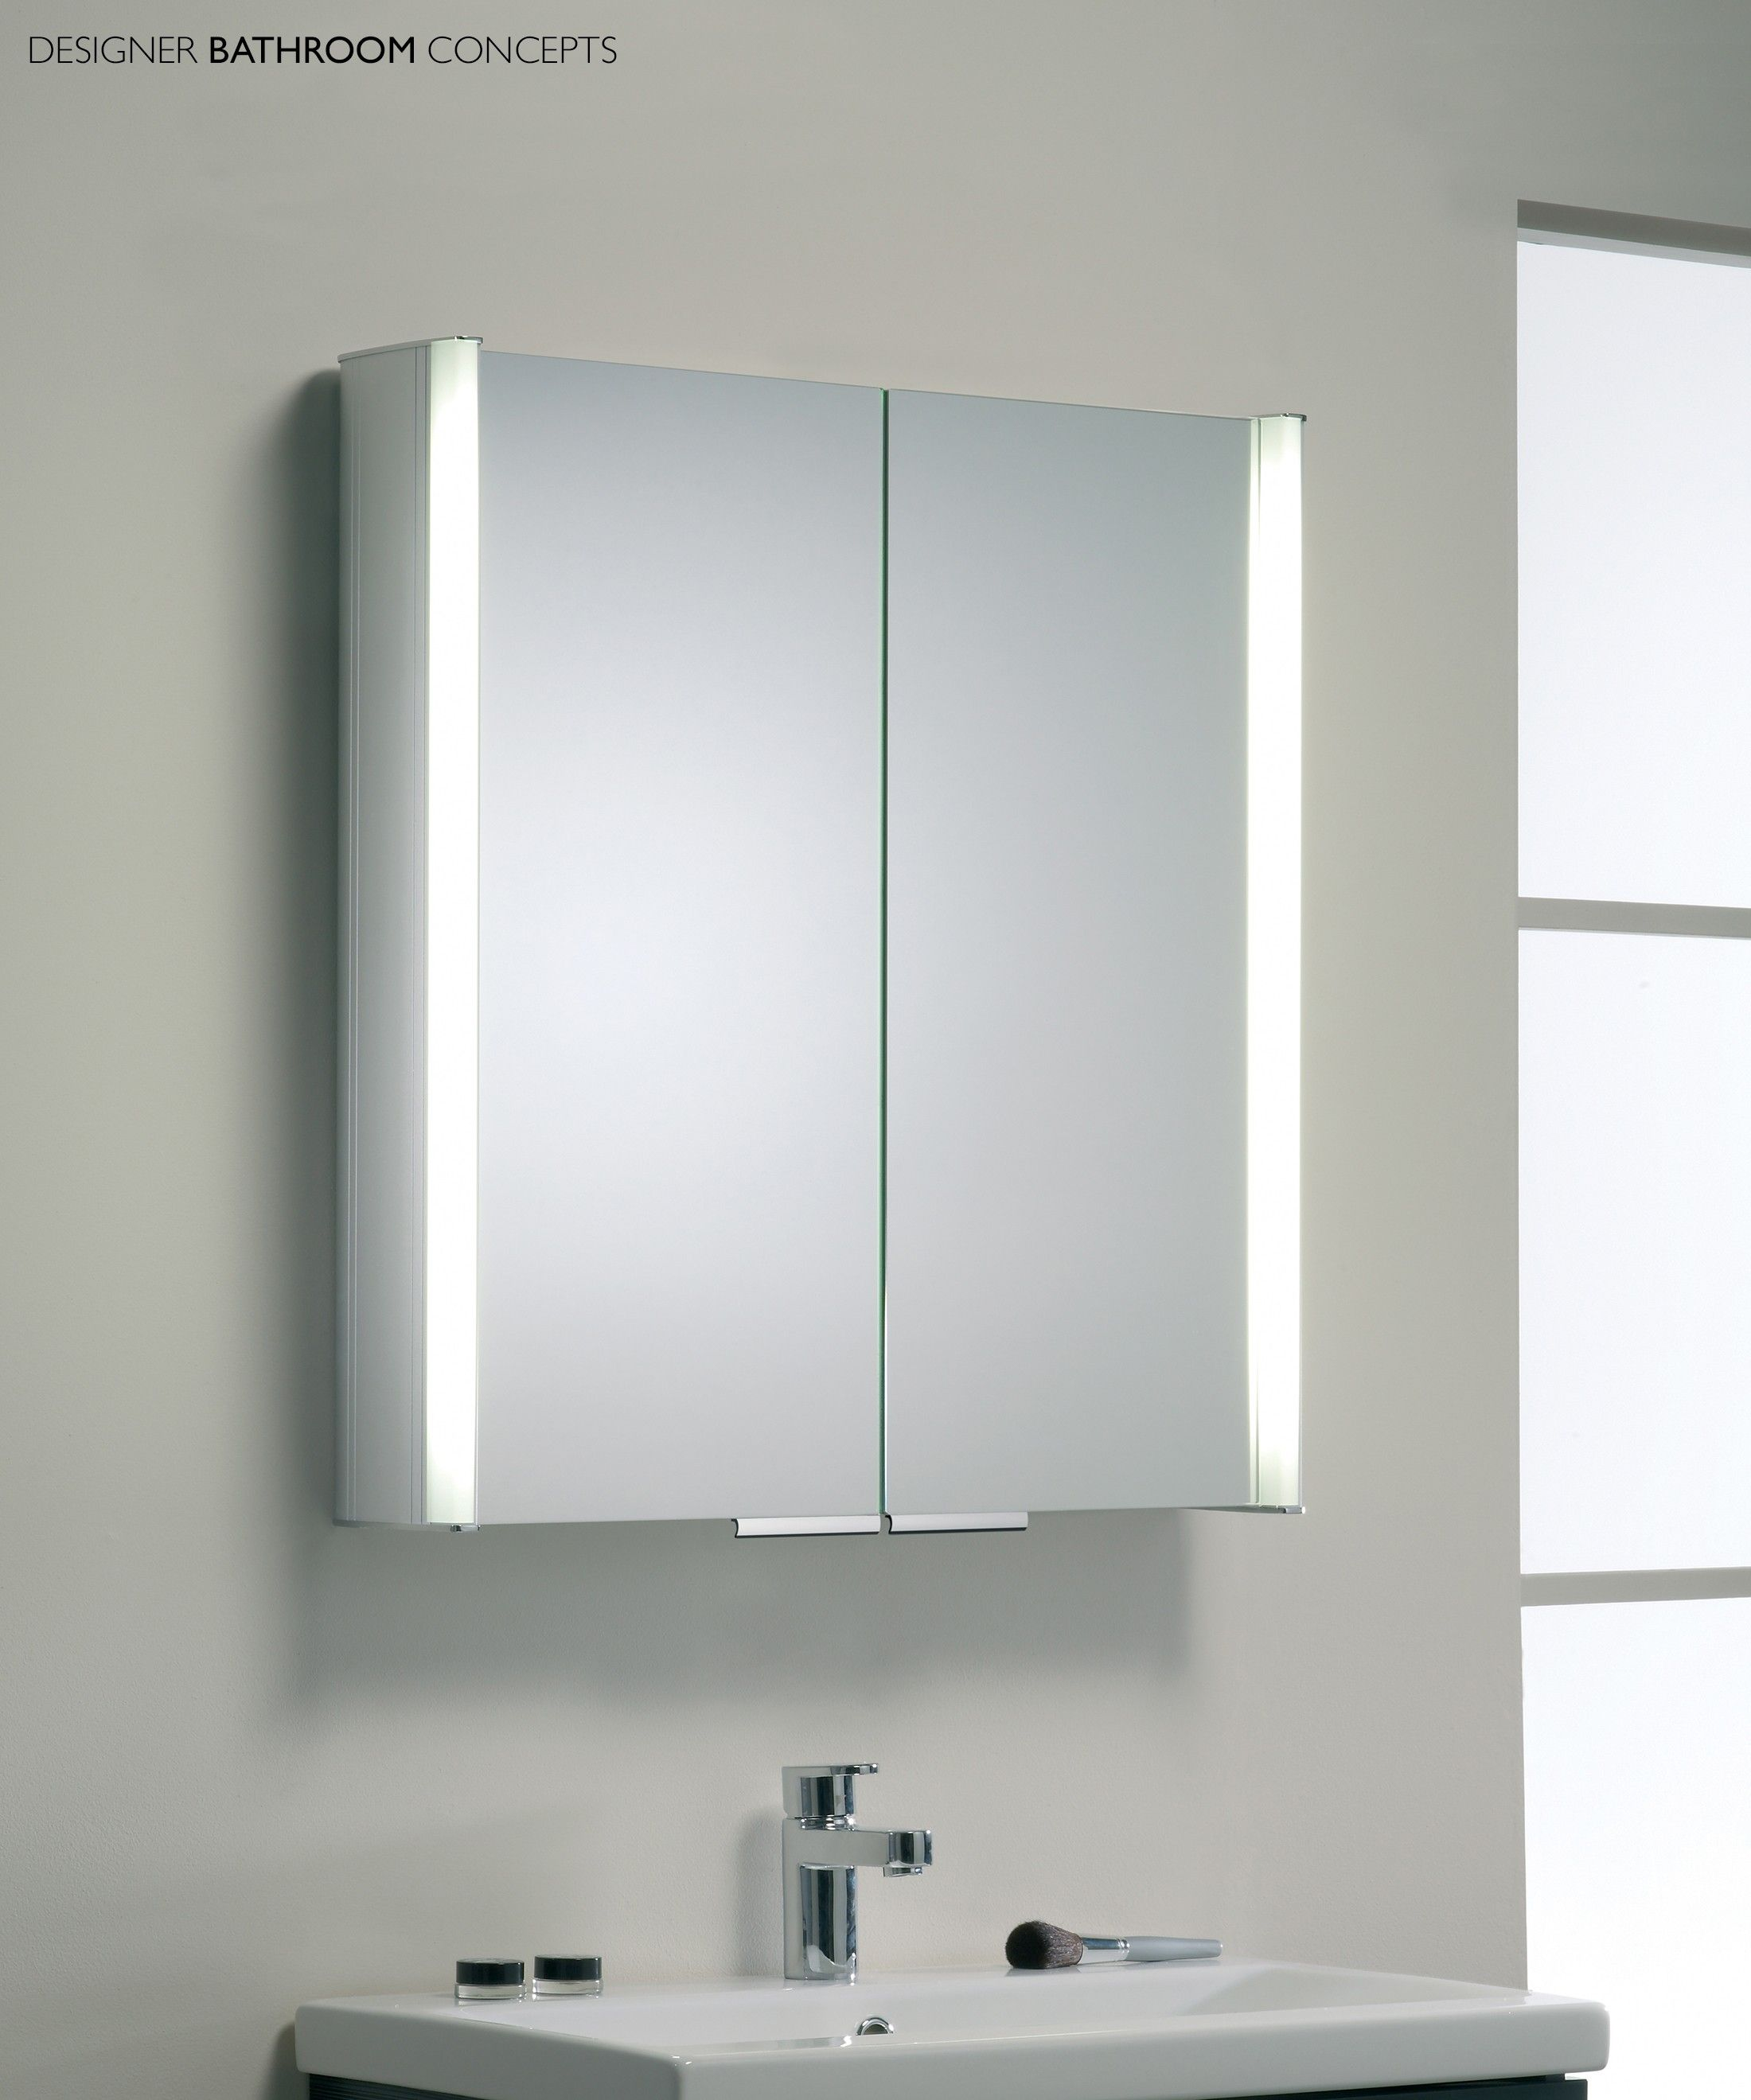 Coolbrilliant Illuminated Bathroom Mirror Cabinet Bathroom Cabinets With Lights Bathroom Mirror Cabinet Illuminated Bathroom Cabinets